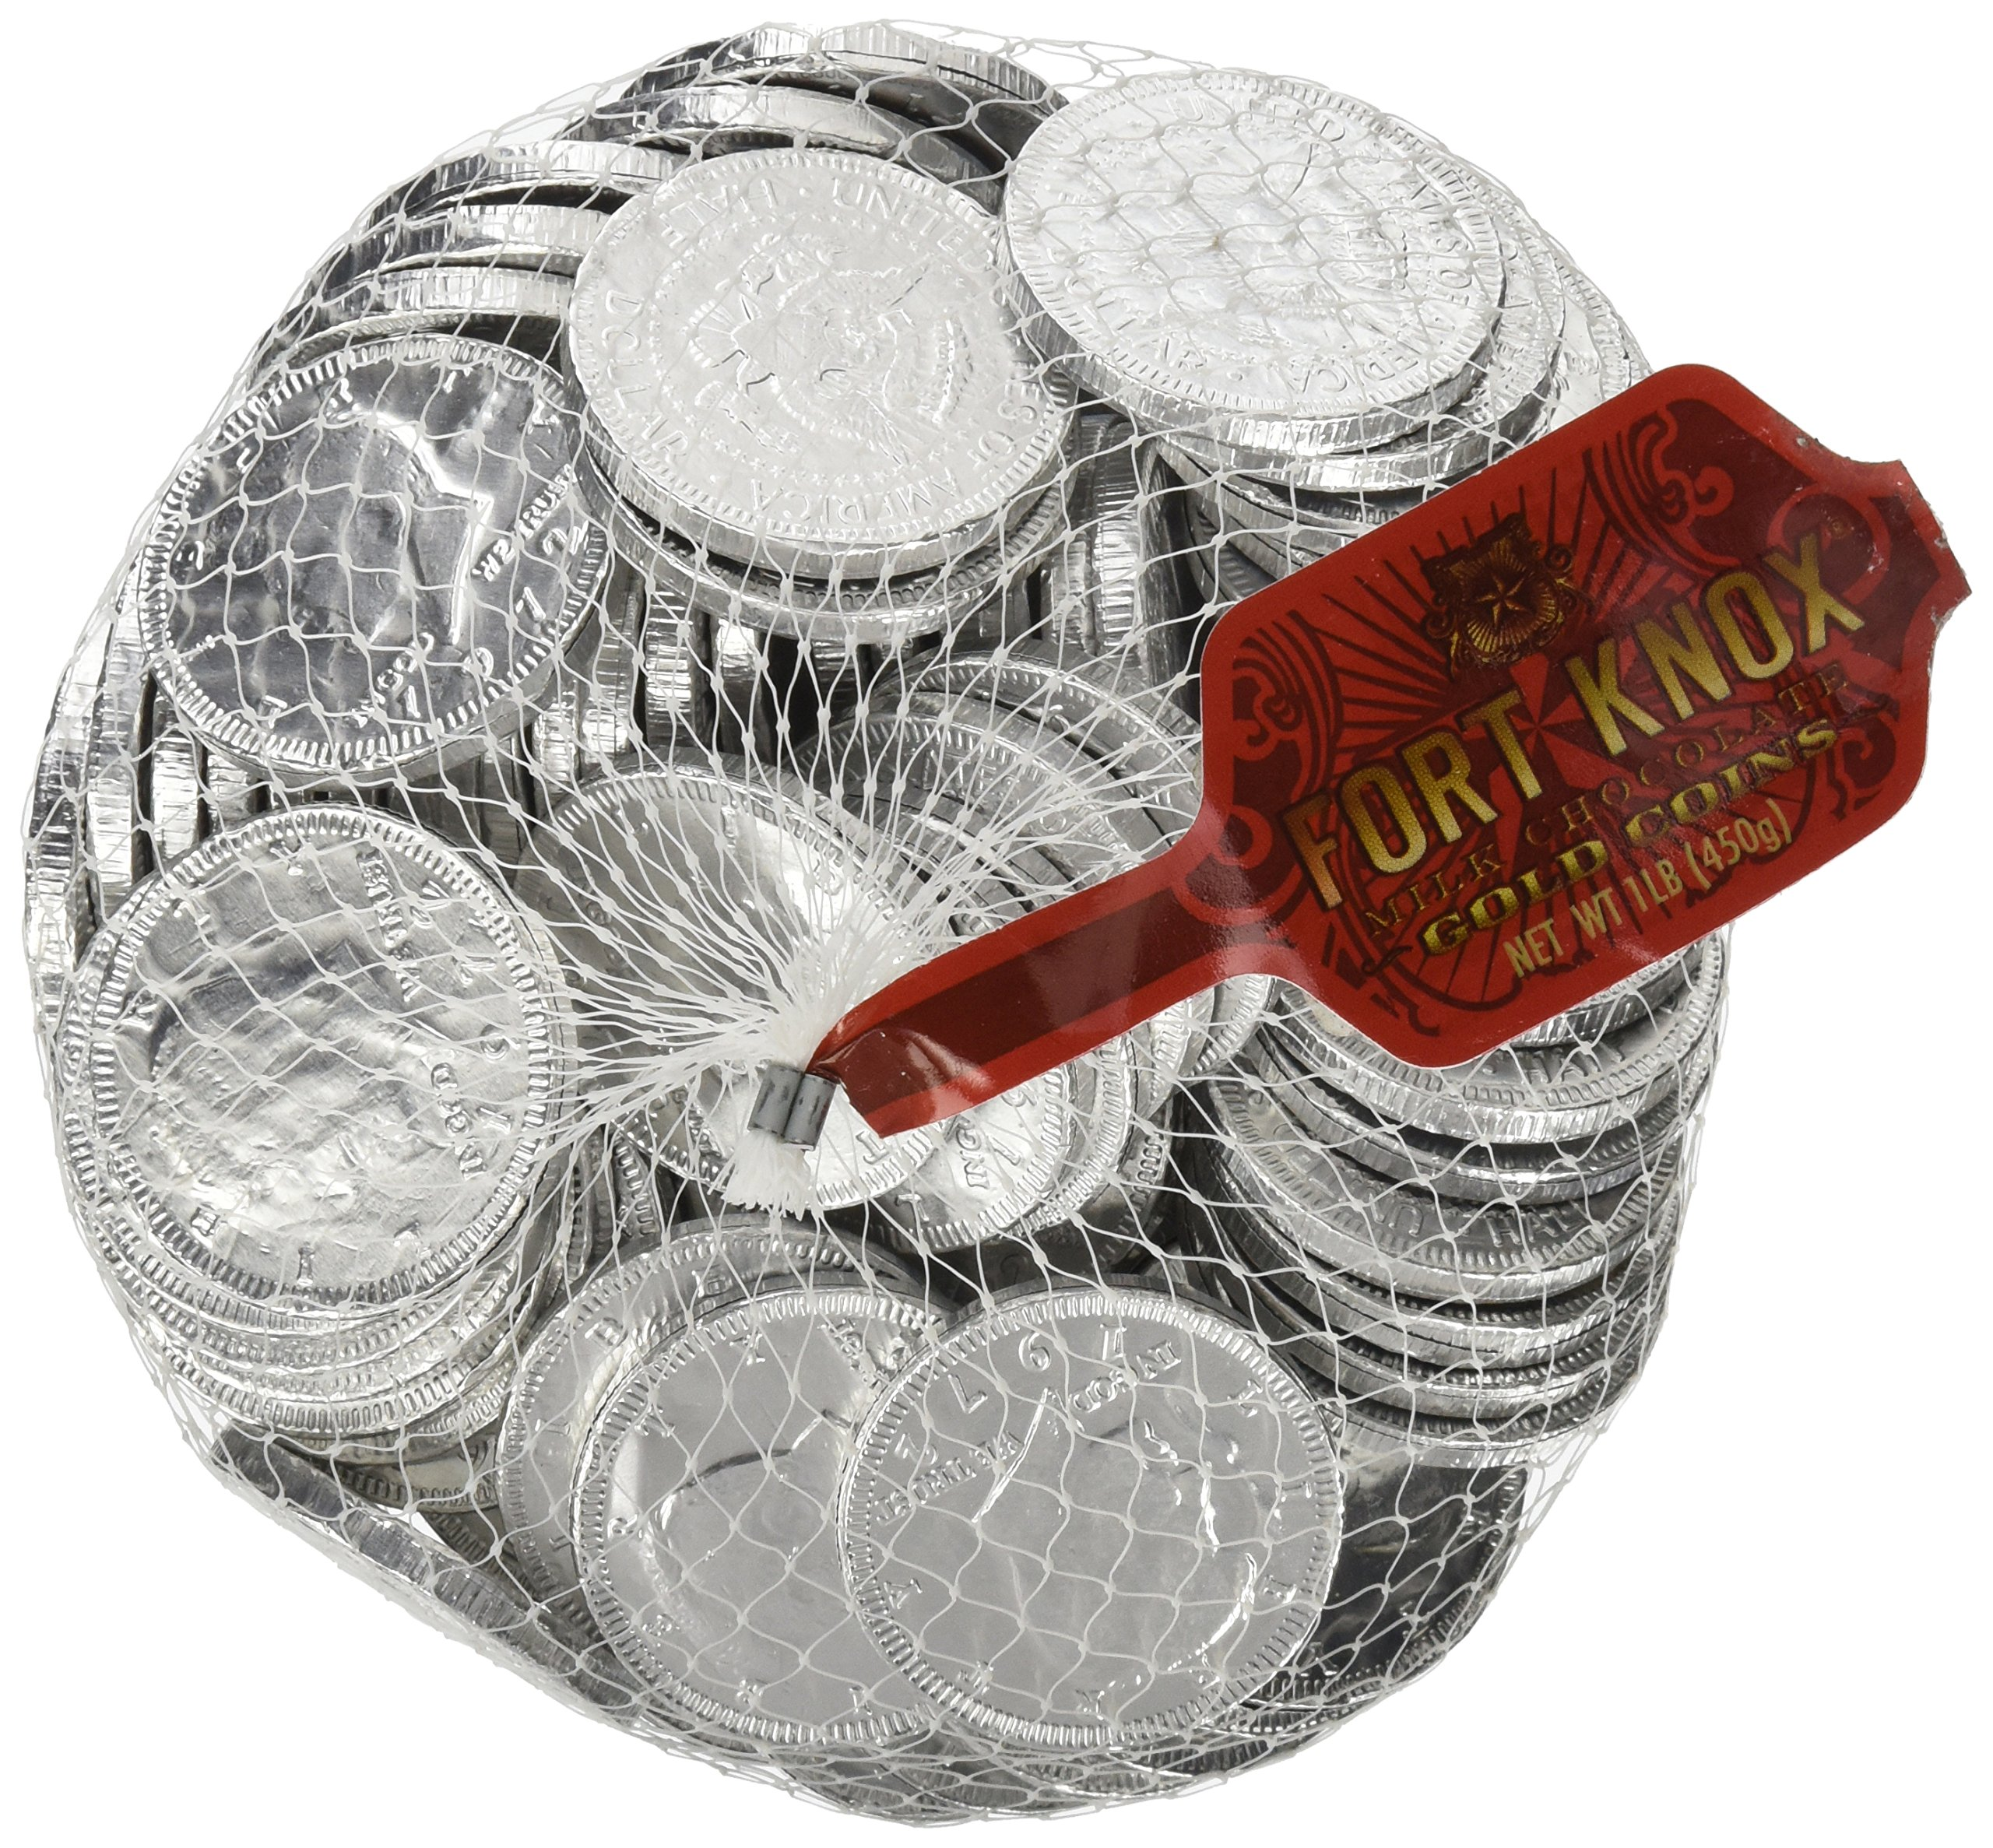 Silver Milk Chocolate Coins, 1 lb. bag, 91 coins